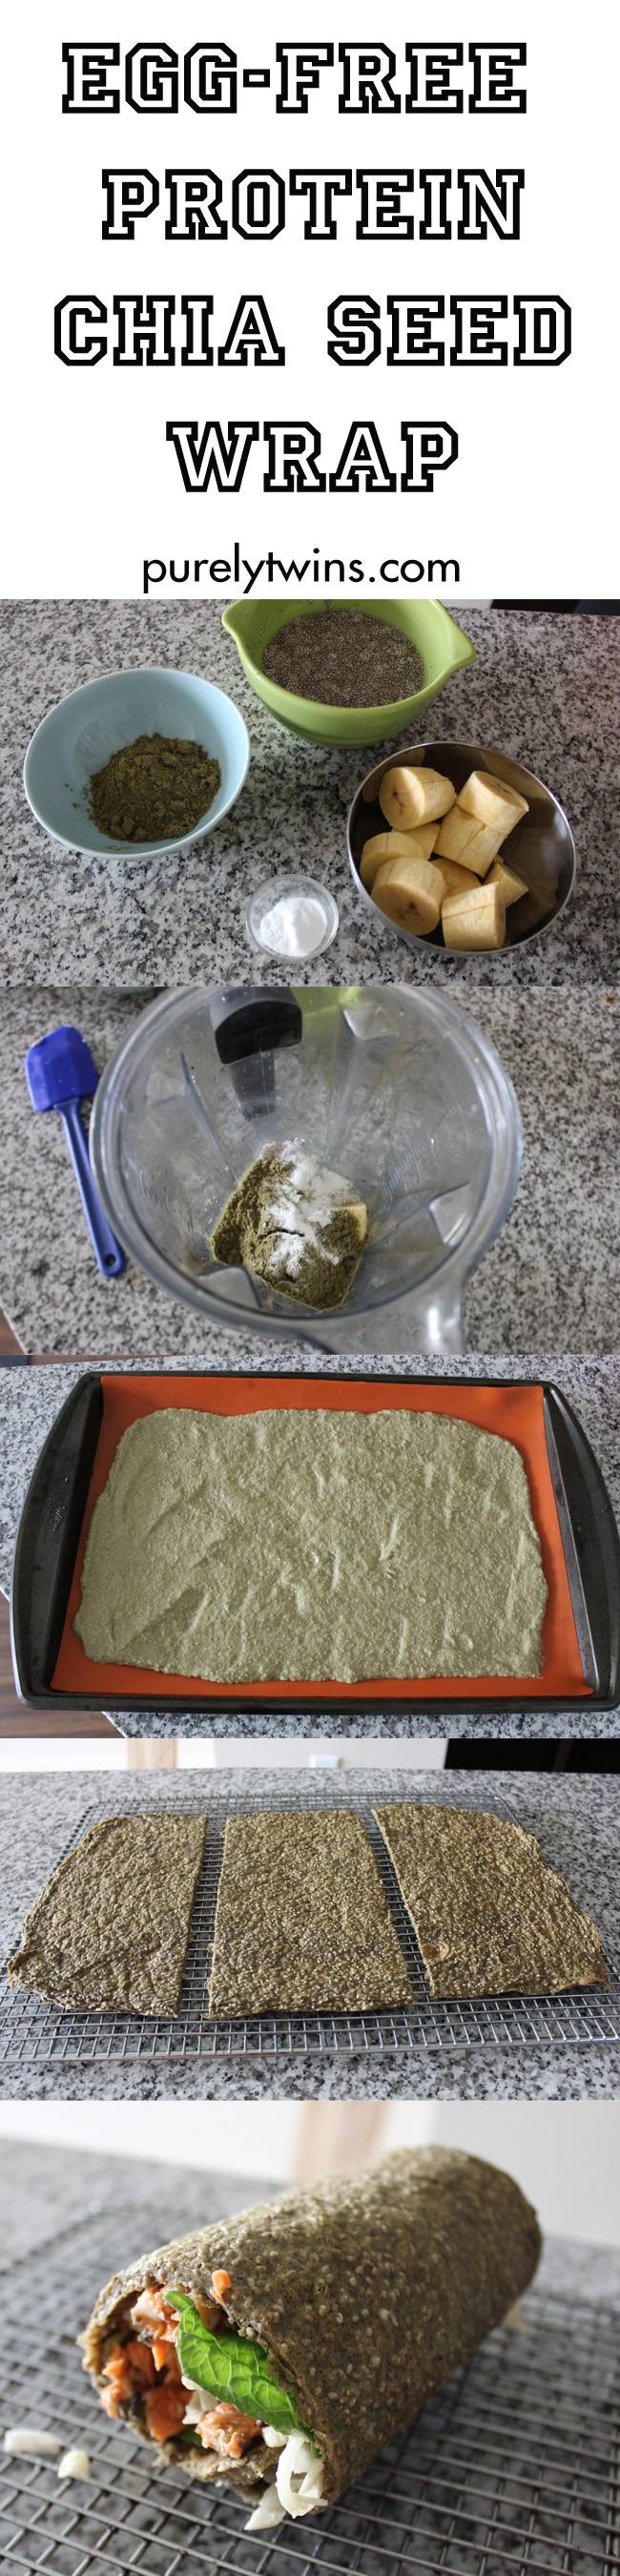 how-to-make-eggfree-wrap-using-chia-seeds-hemp-protein-purelytwins